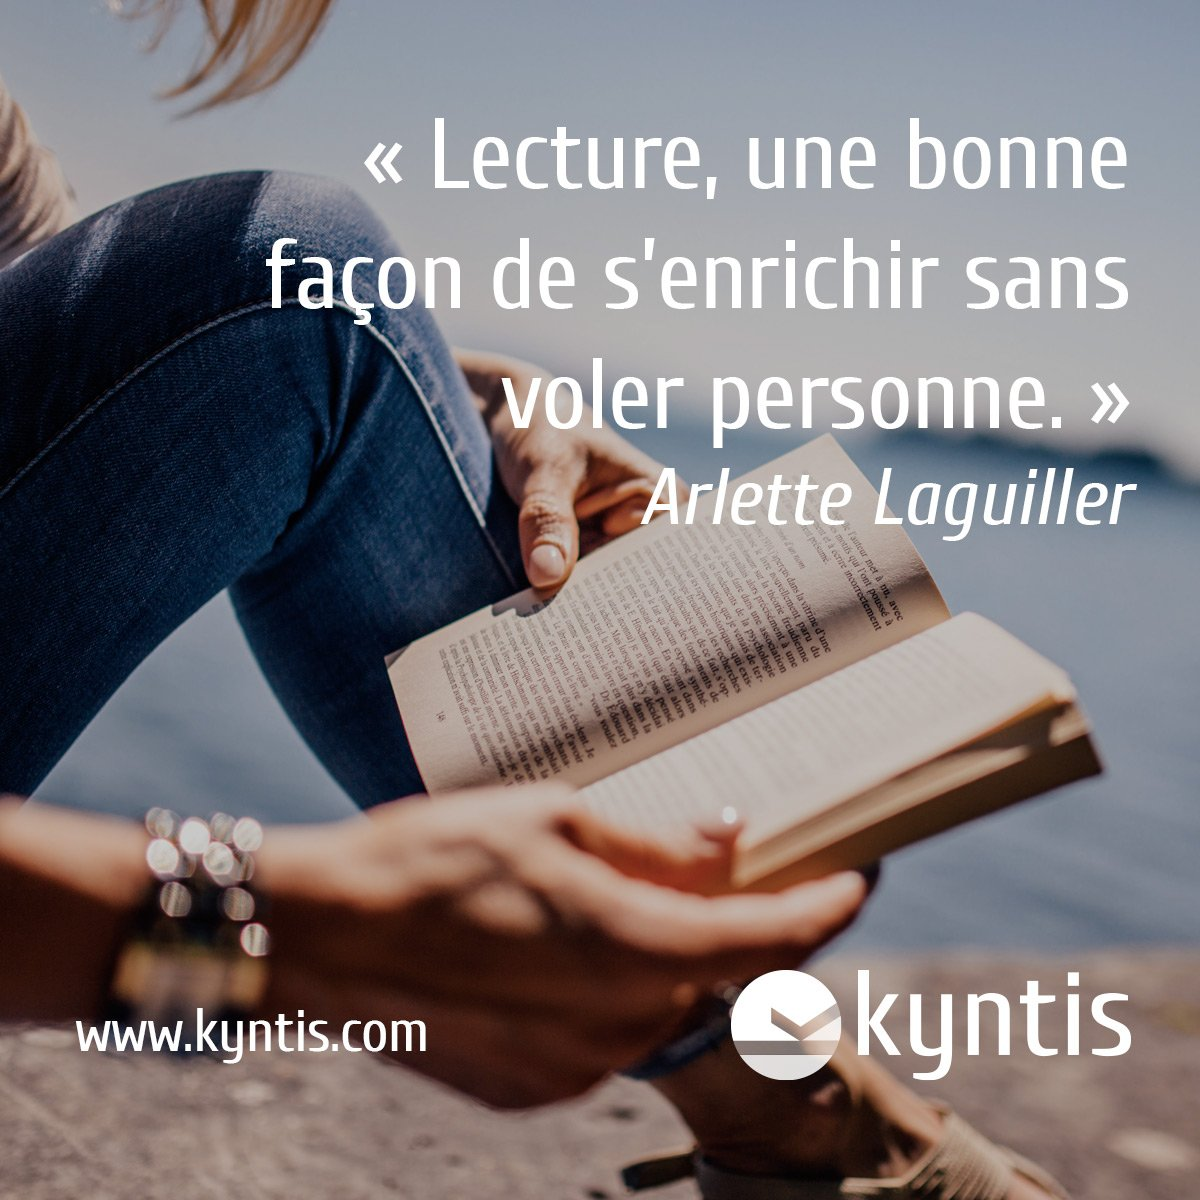 &quot;#Reading a #good way to get #Rich without stealing anyone&quot; #ArletteLaguiller #Citation #lecture #Passion #Energie #Love #KyntisYourself<br>http://pic.twitter.com/eZJBIt7cdw